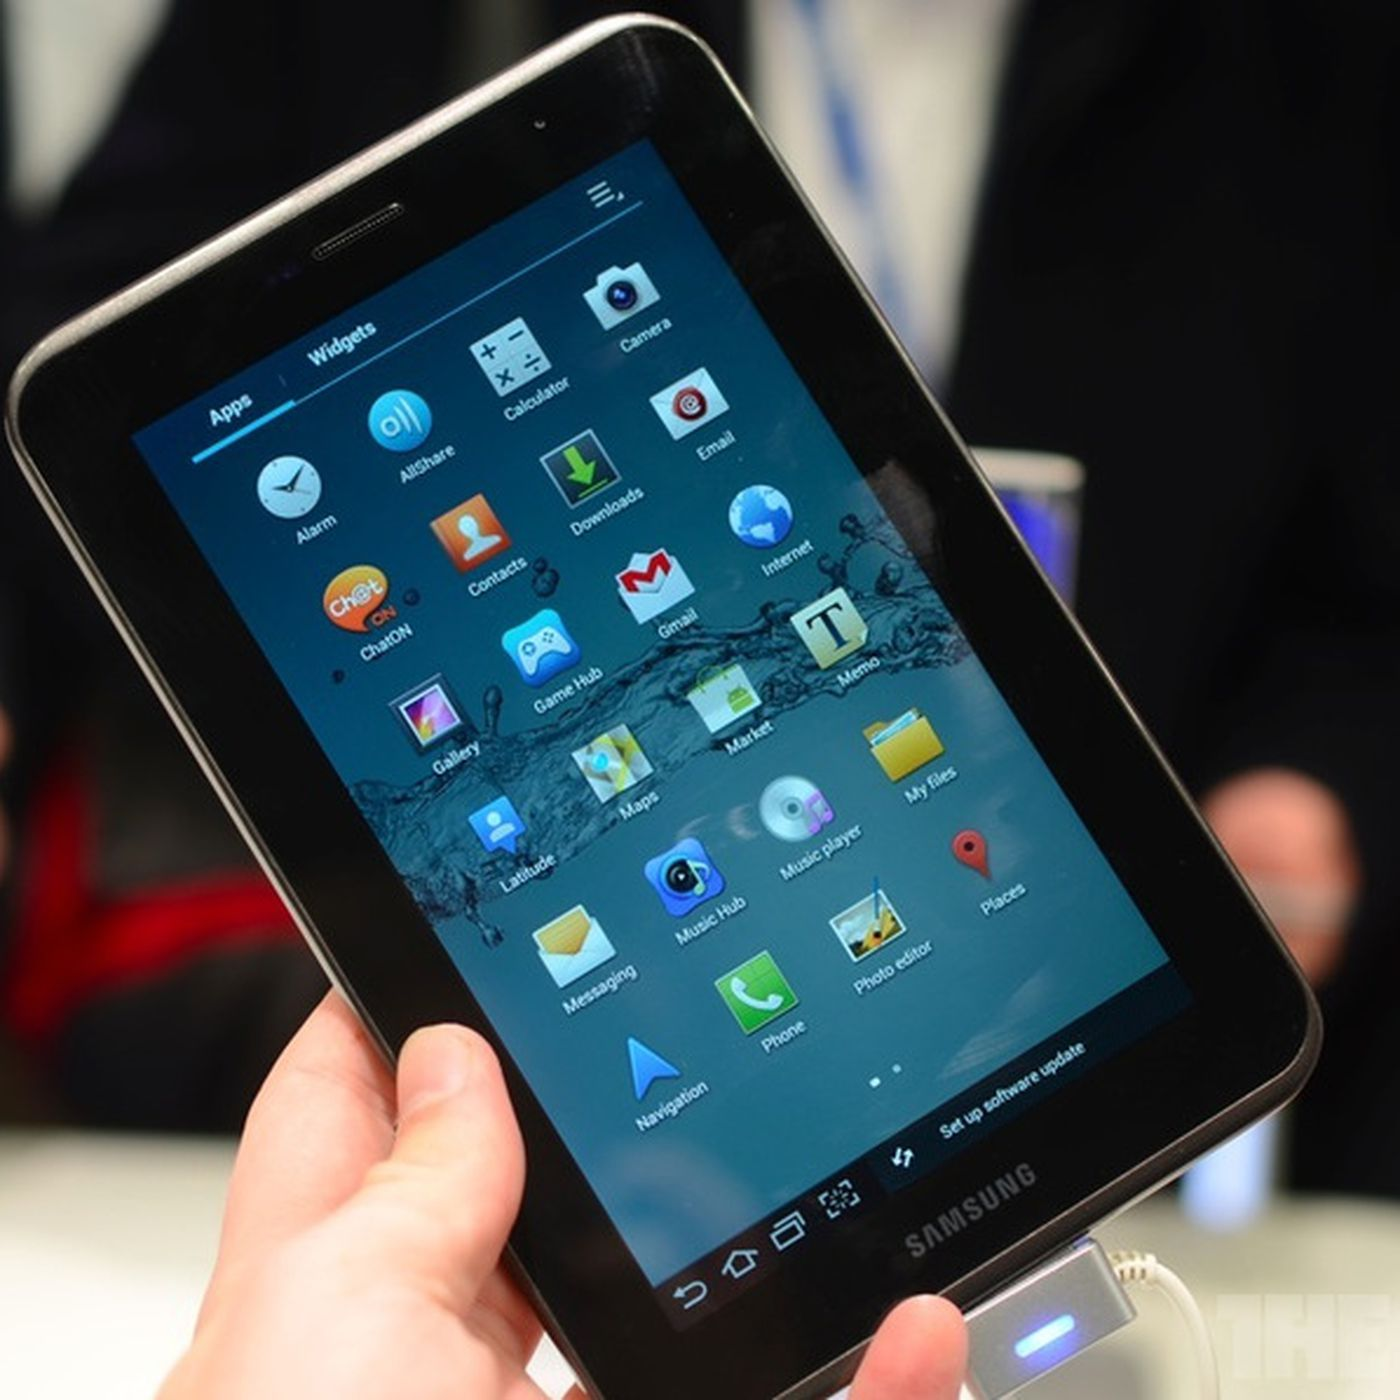 Samsung Galaxy Tab 2 7 0 coming to Verizon on August 17th for